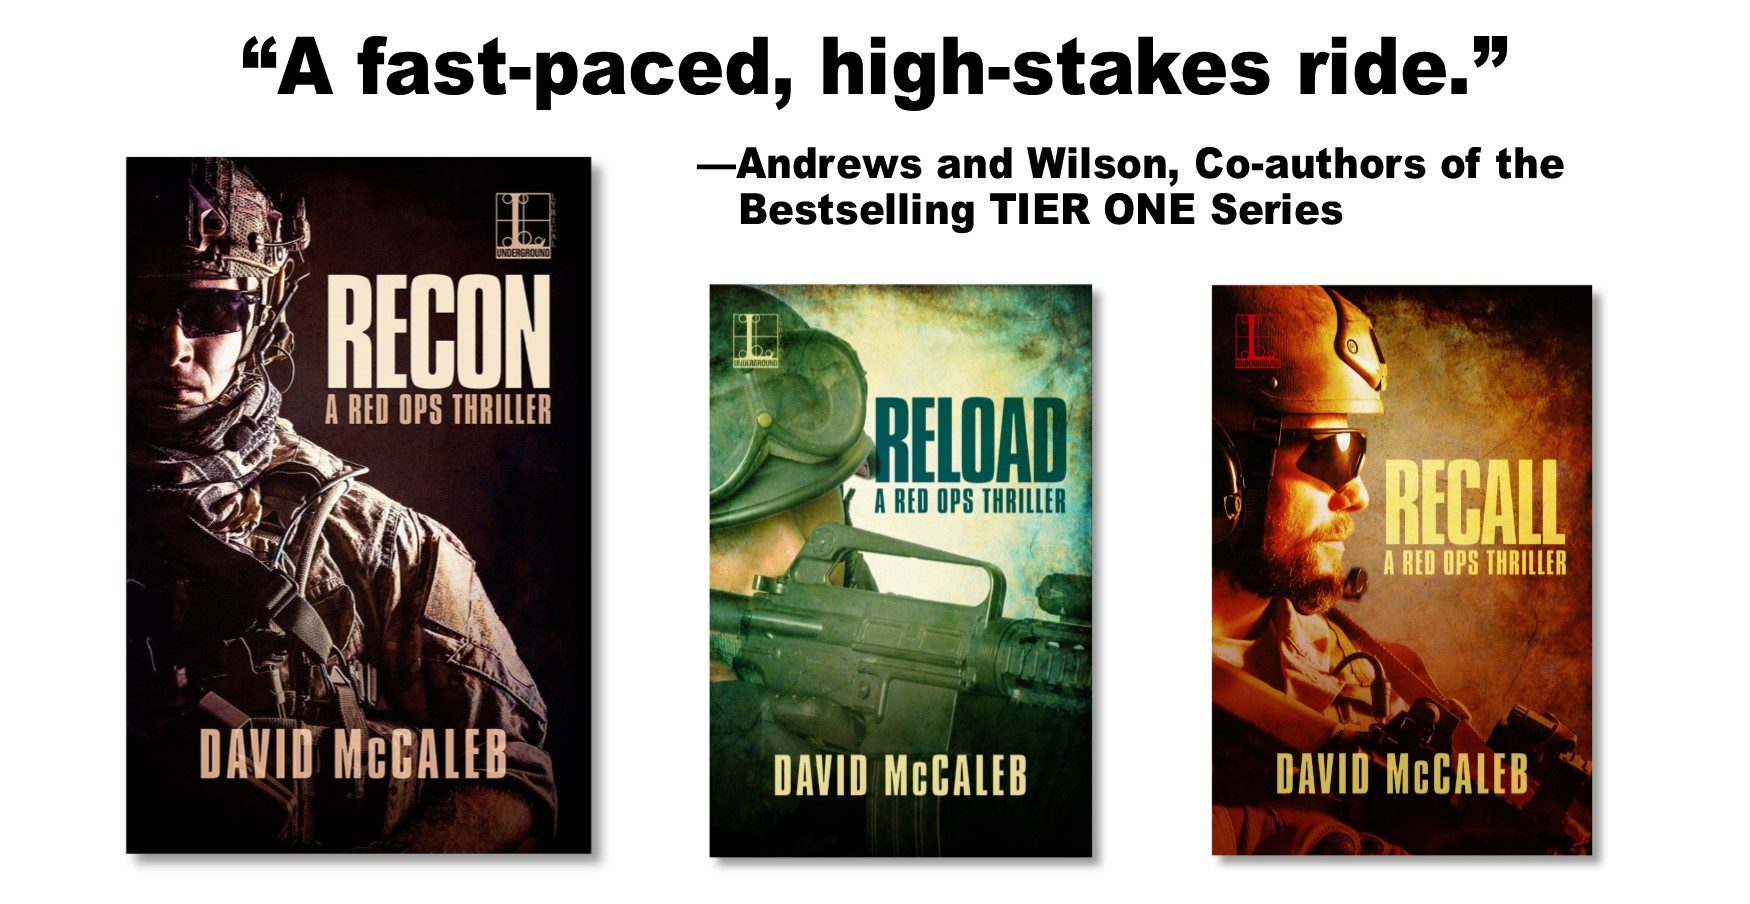 RECON book release, covers of three books in the RED OPS thriller series, with author blurb.